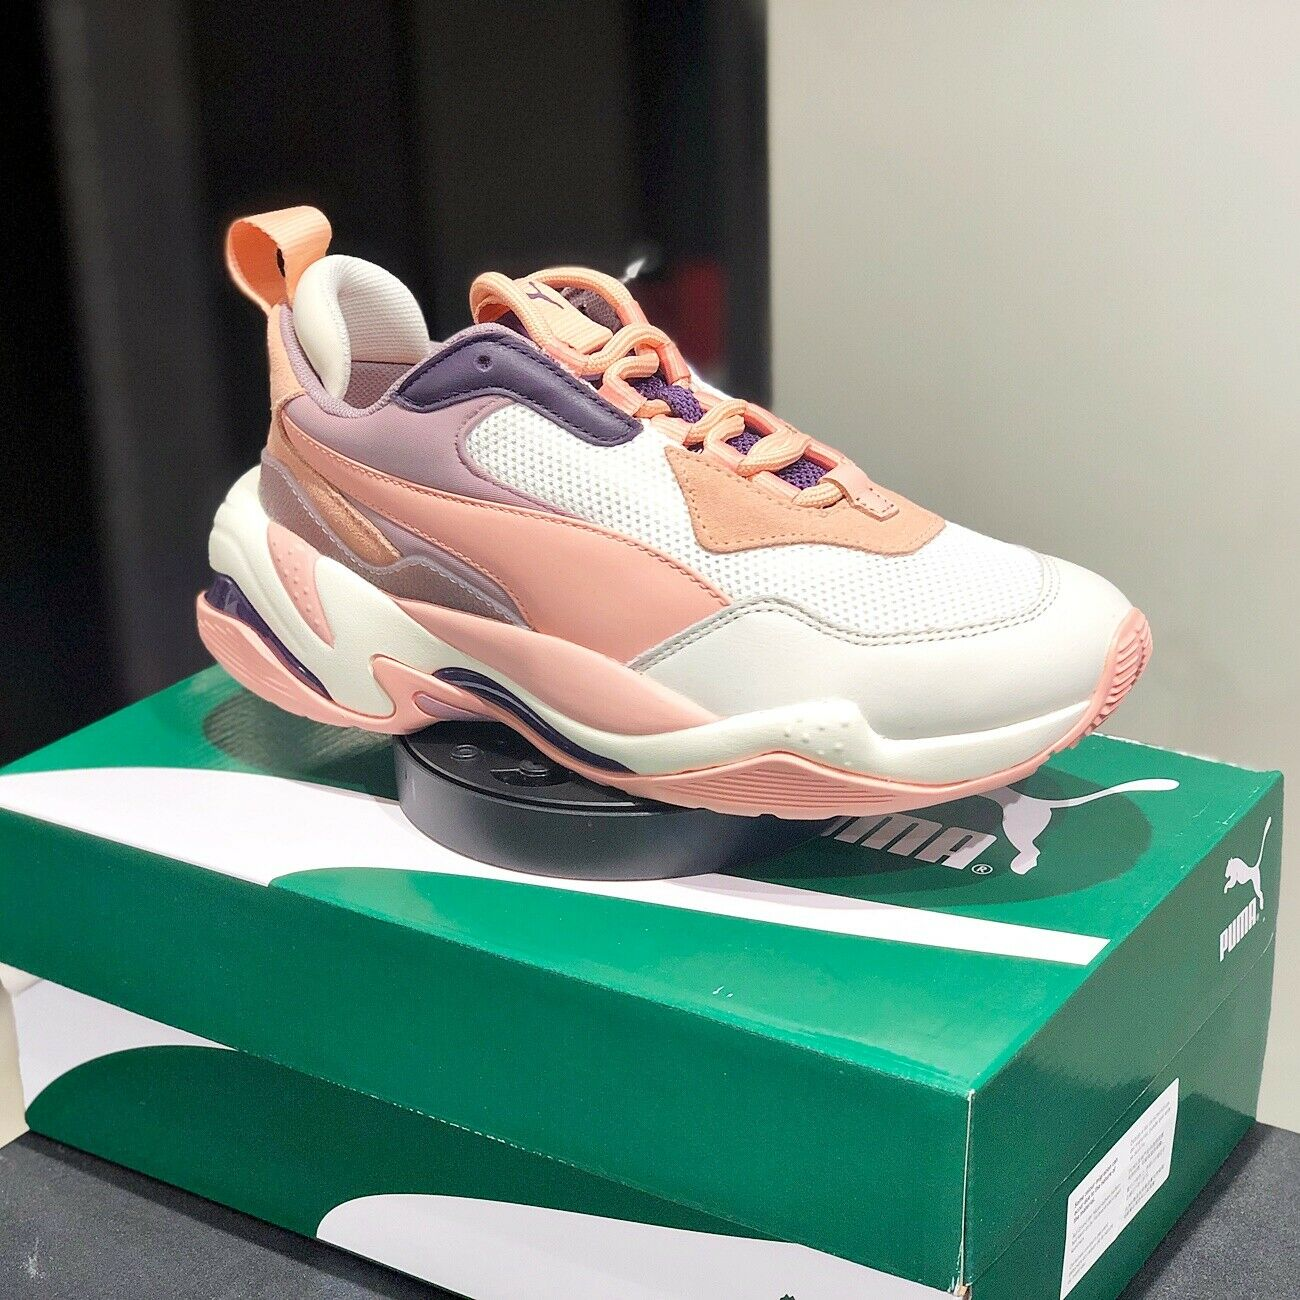 Puma THUNDER SPECTRA 36751609 - 367516 09 UNISEX new with with with box and tag, Authentic c12ac9